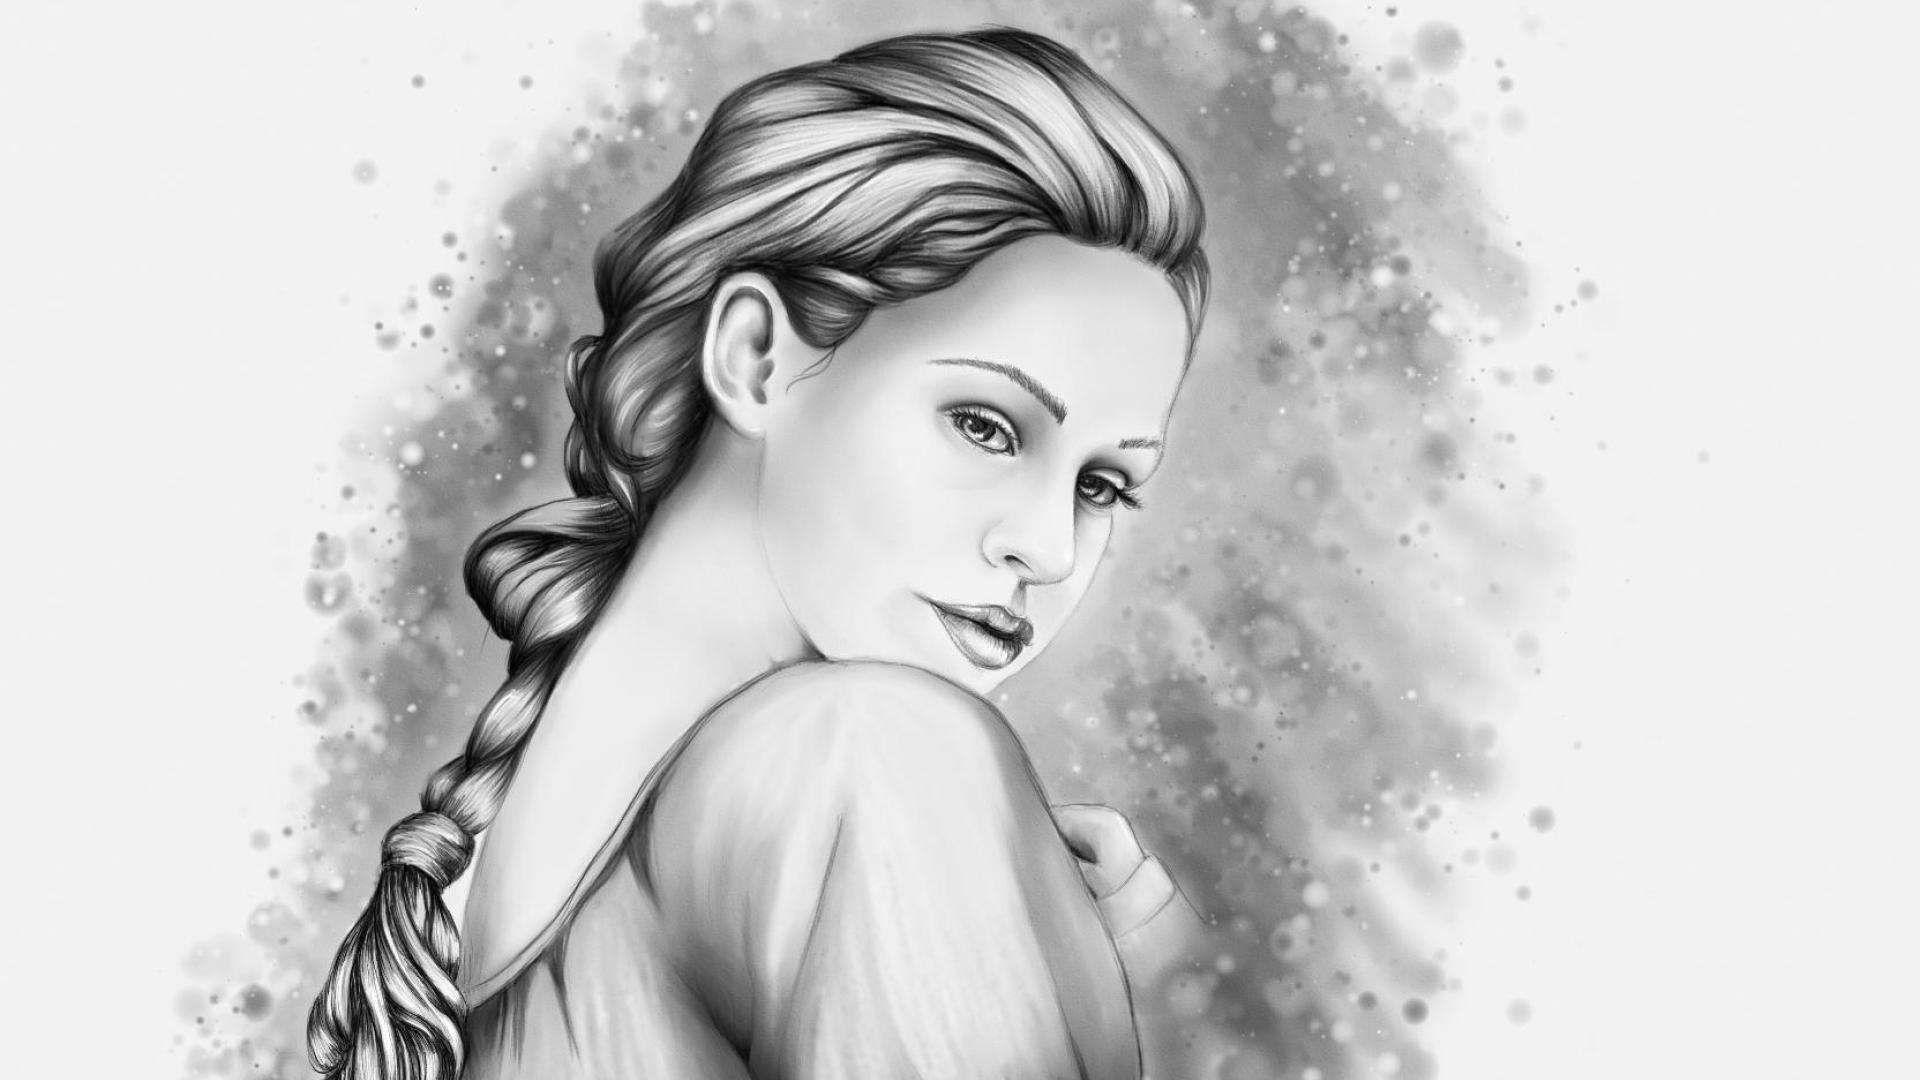 Pencil Art Hd